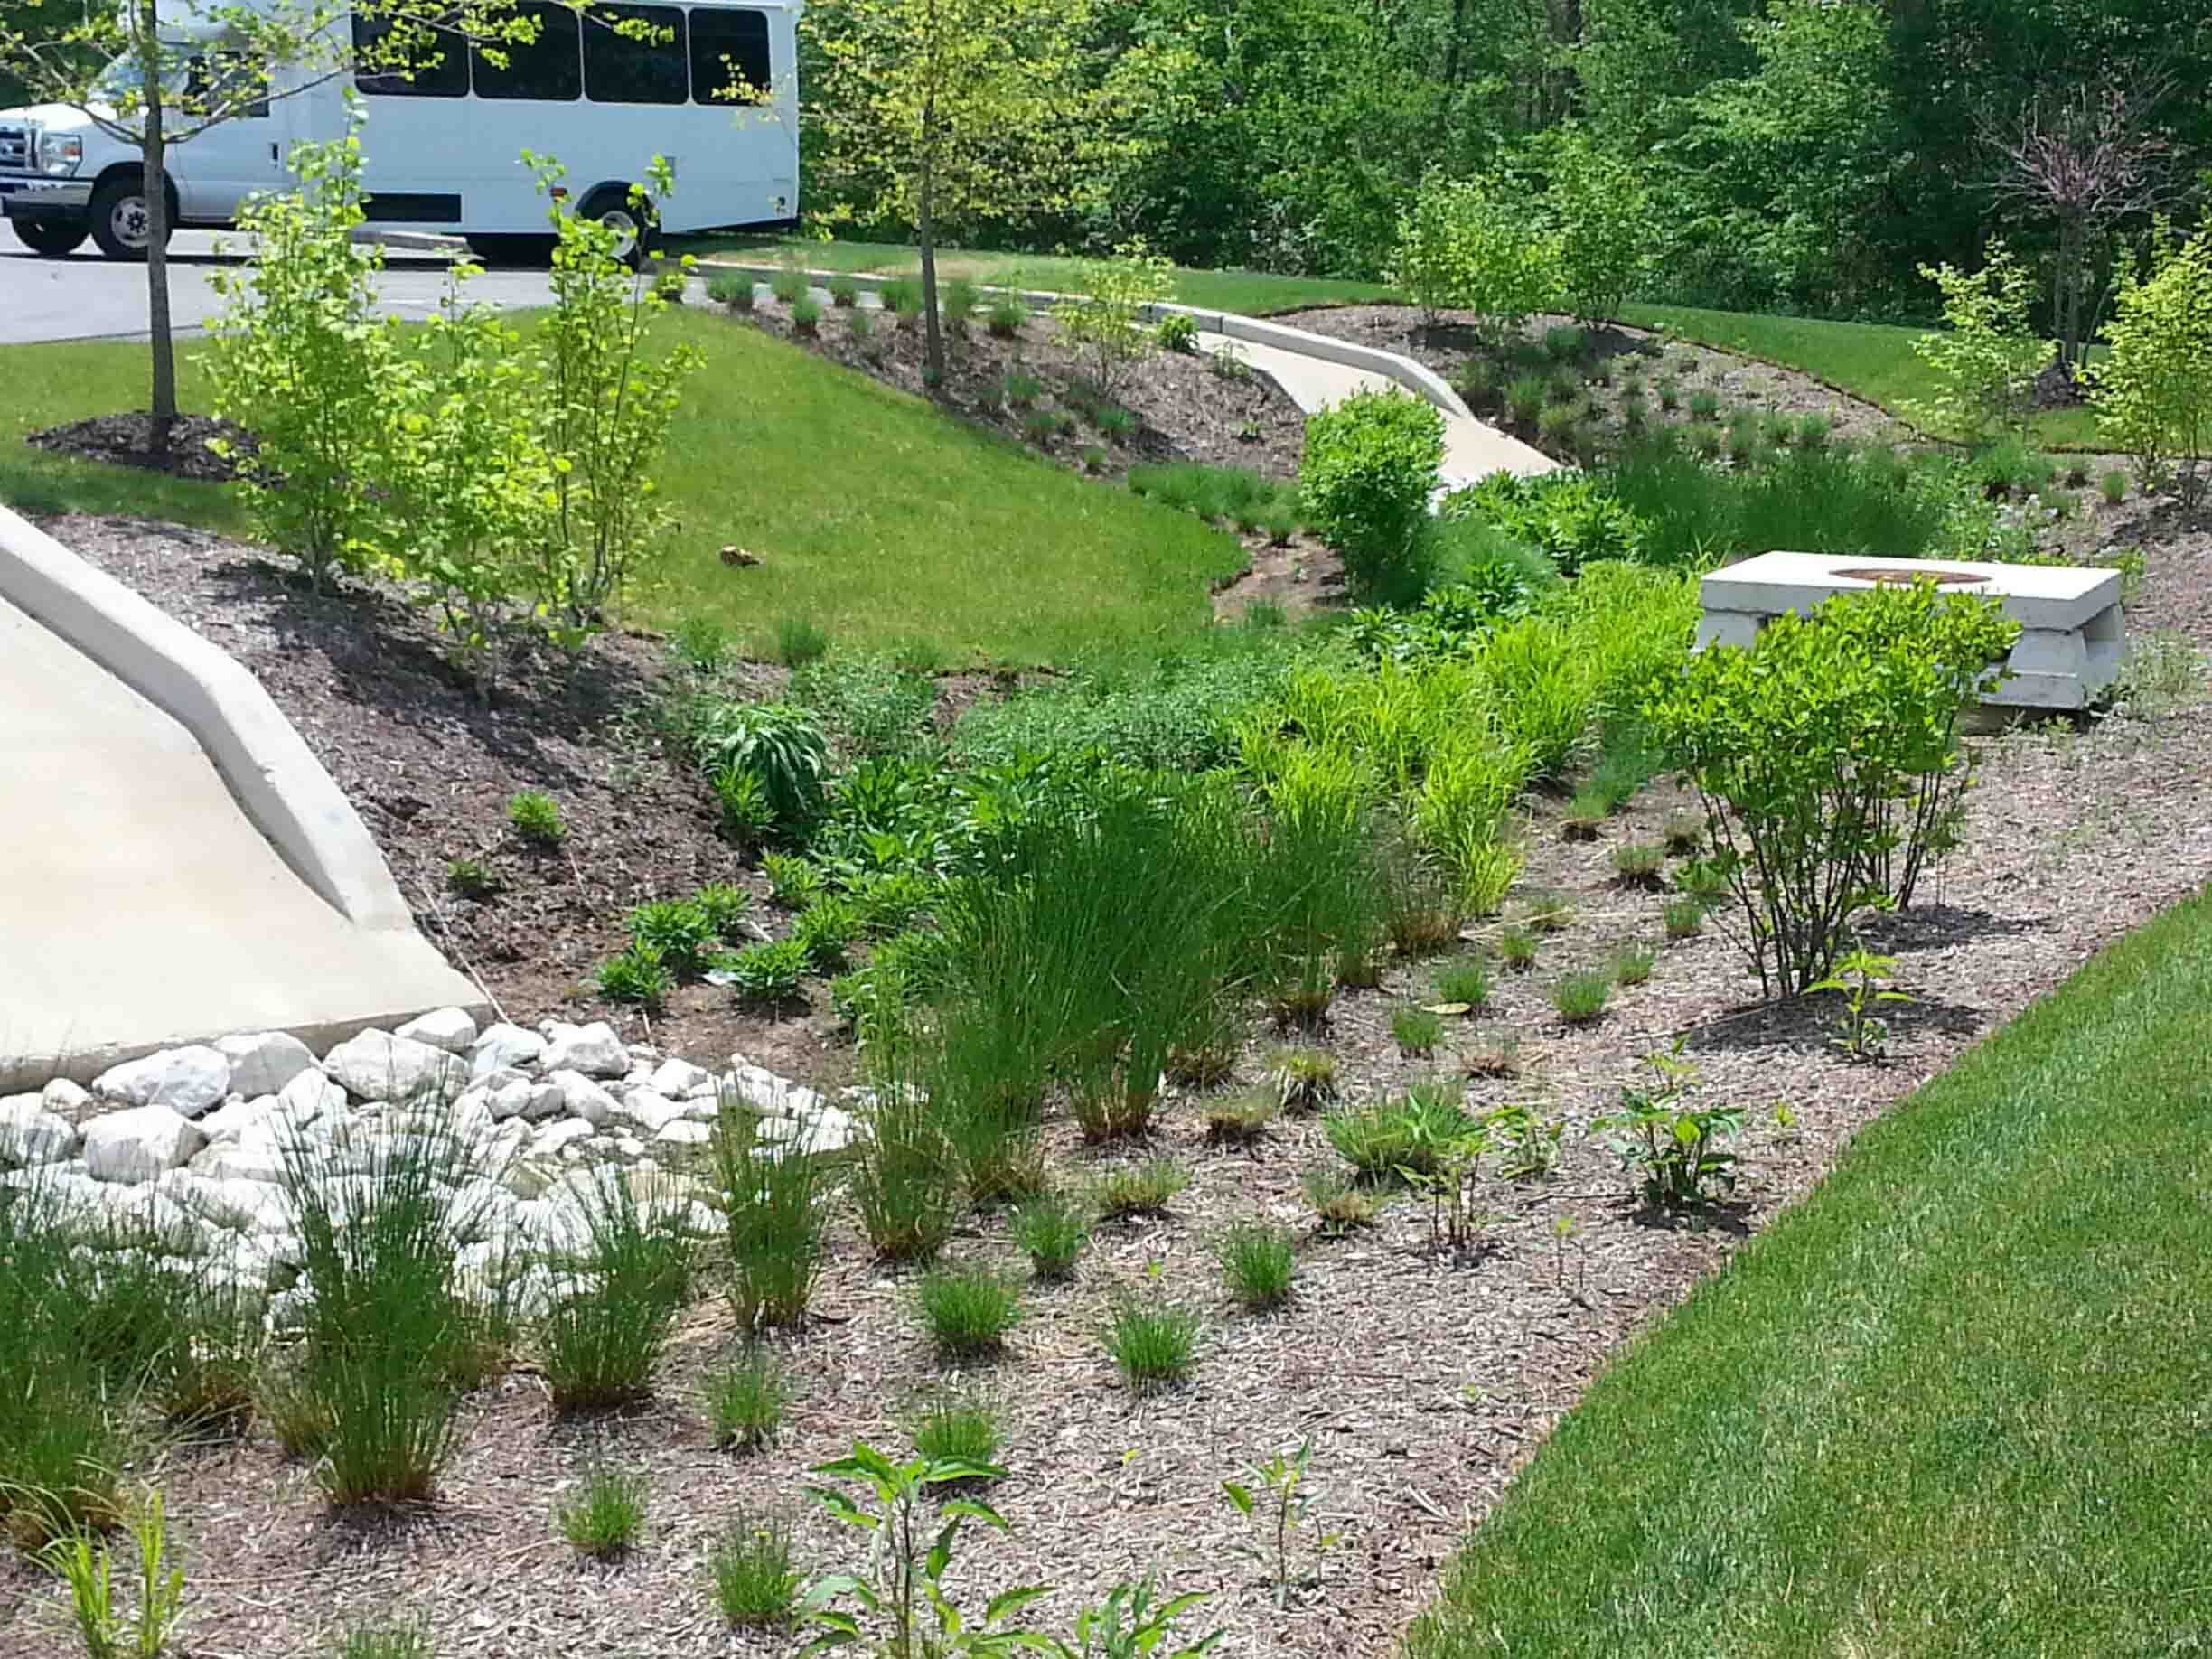 Stormwater Management Basin : Bioretention what does it do how work